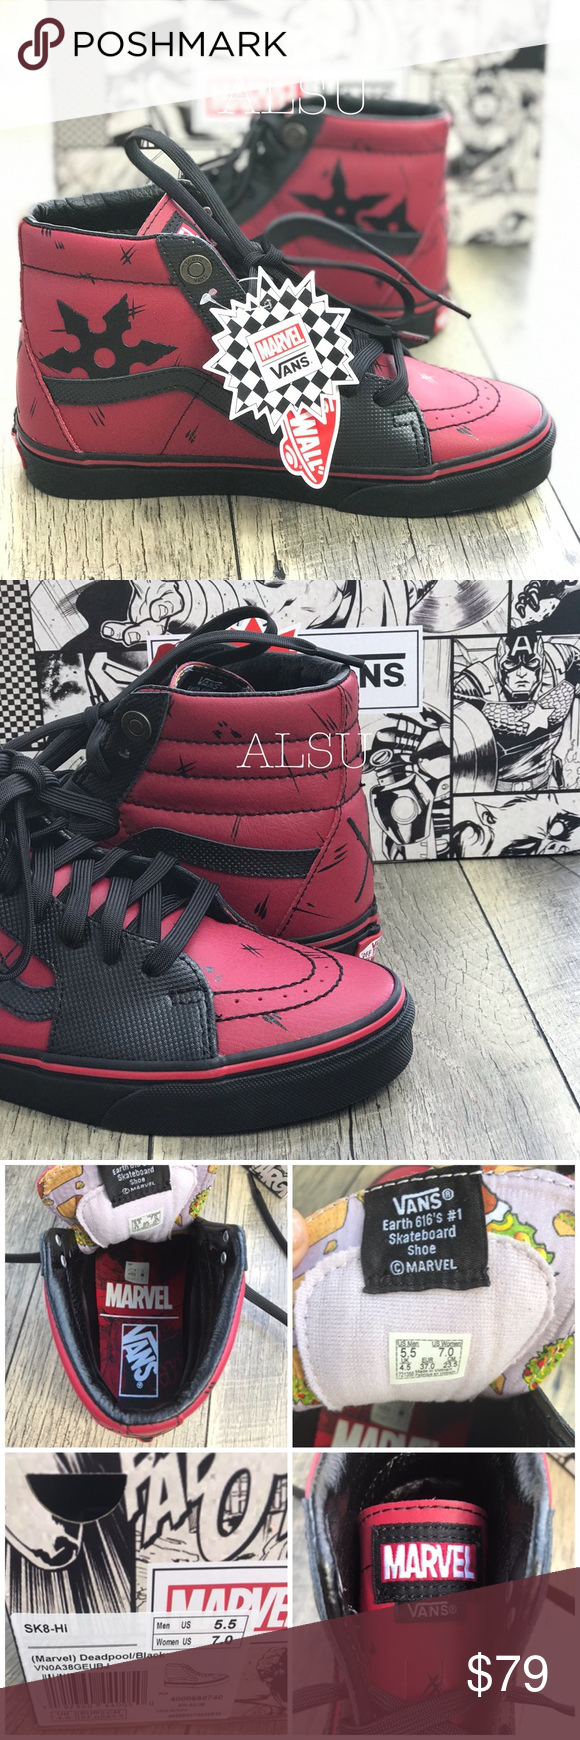 9872a5d934e NWT VANS Marvel SK8-HI Deadpool Black W AUTHENTIC Brand new with box! Price  is